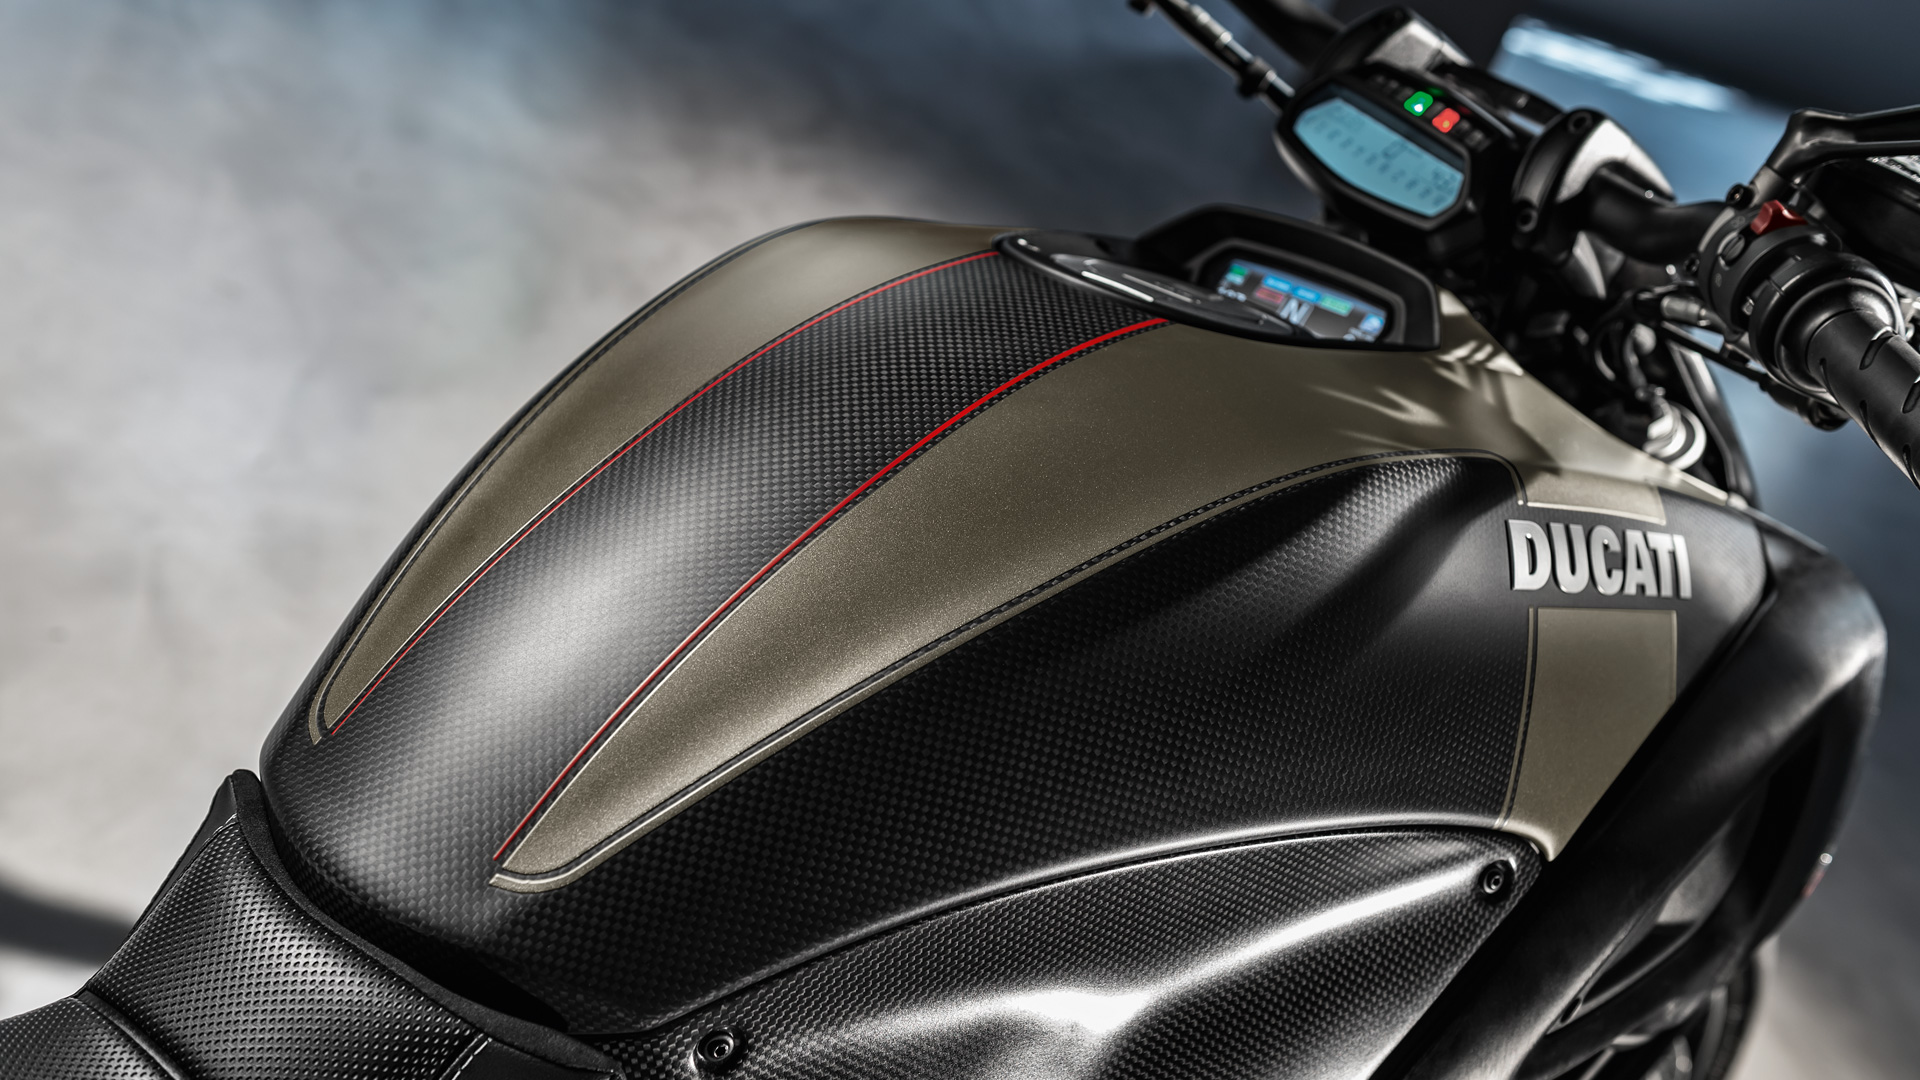 Ducati Diavel: Sport-Cruiser bikes with unique style